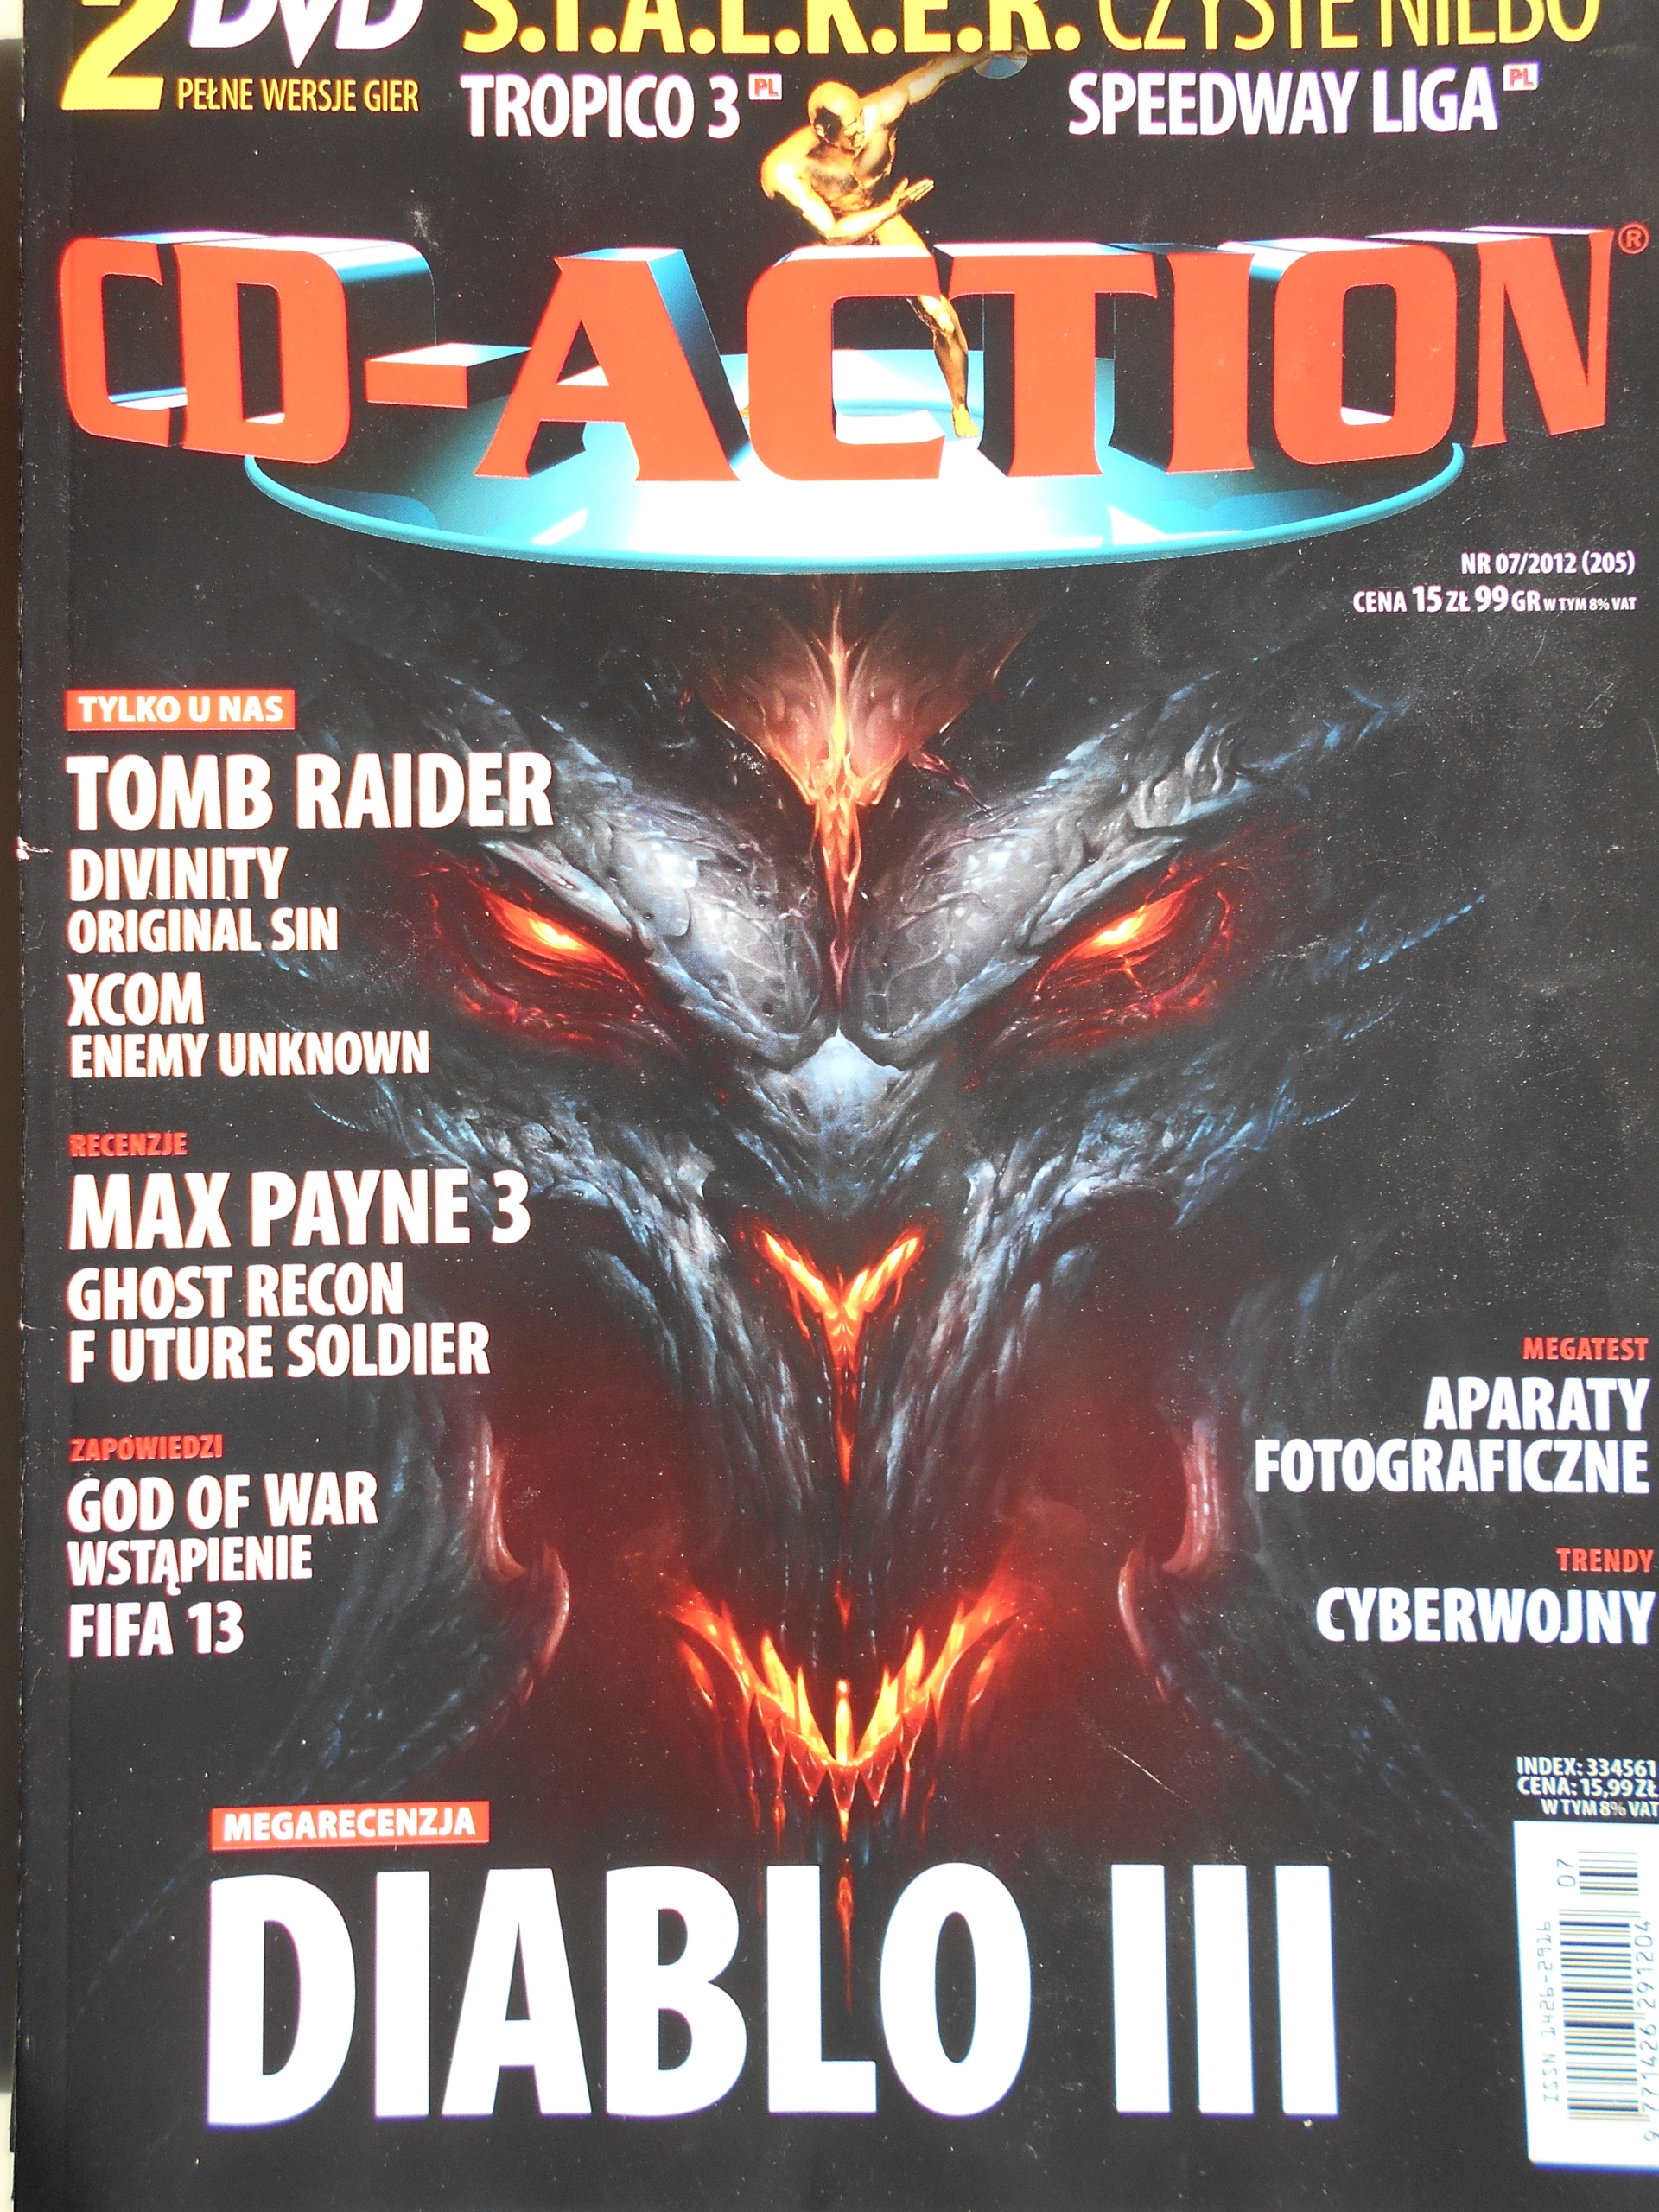 CD-ACTION * NR 07 / 2012